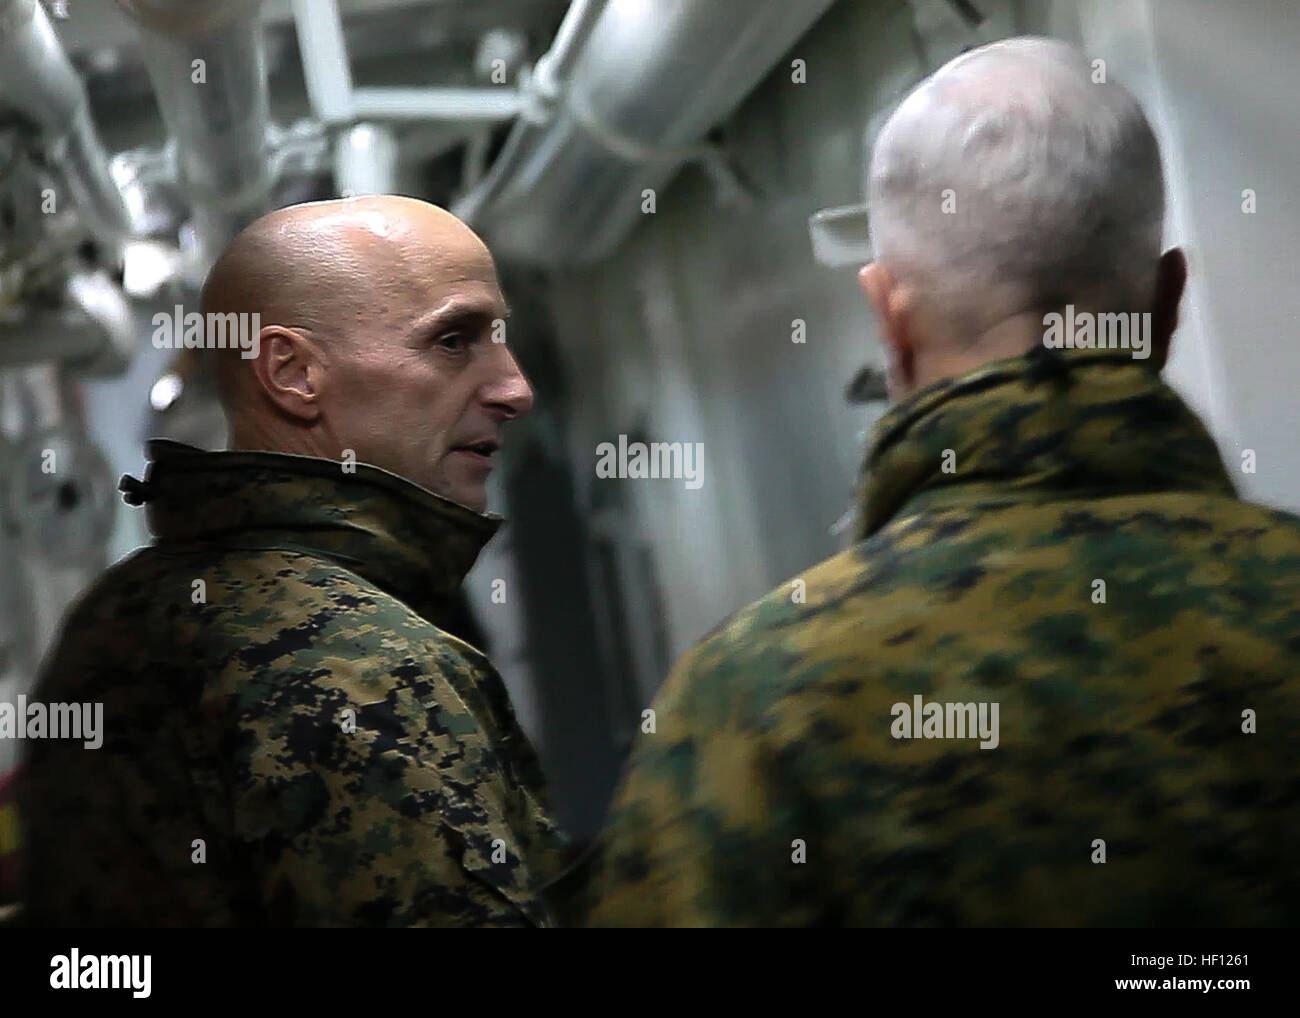 Col. Matthew G. St. Clair, 26th Marine Expeditionary Unit commanding officer, talks with General James F. Amos, Stock Photo